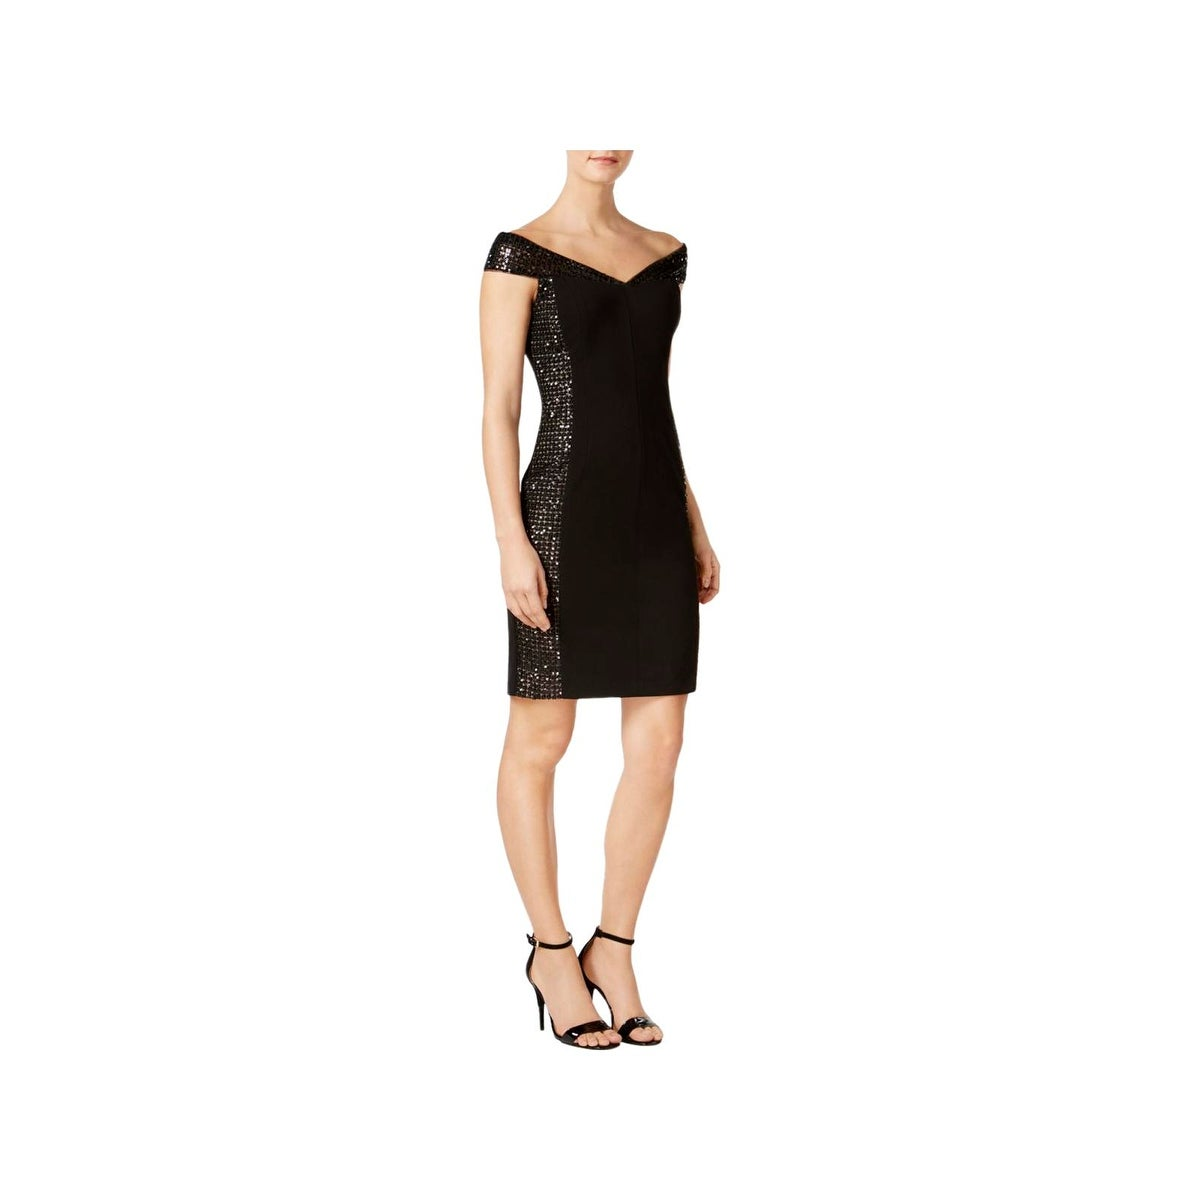 e97d6126 Calvin Klein Dresses | Find Great Women's Clothing Deals Shopping at  Overstock